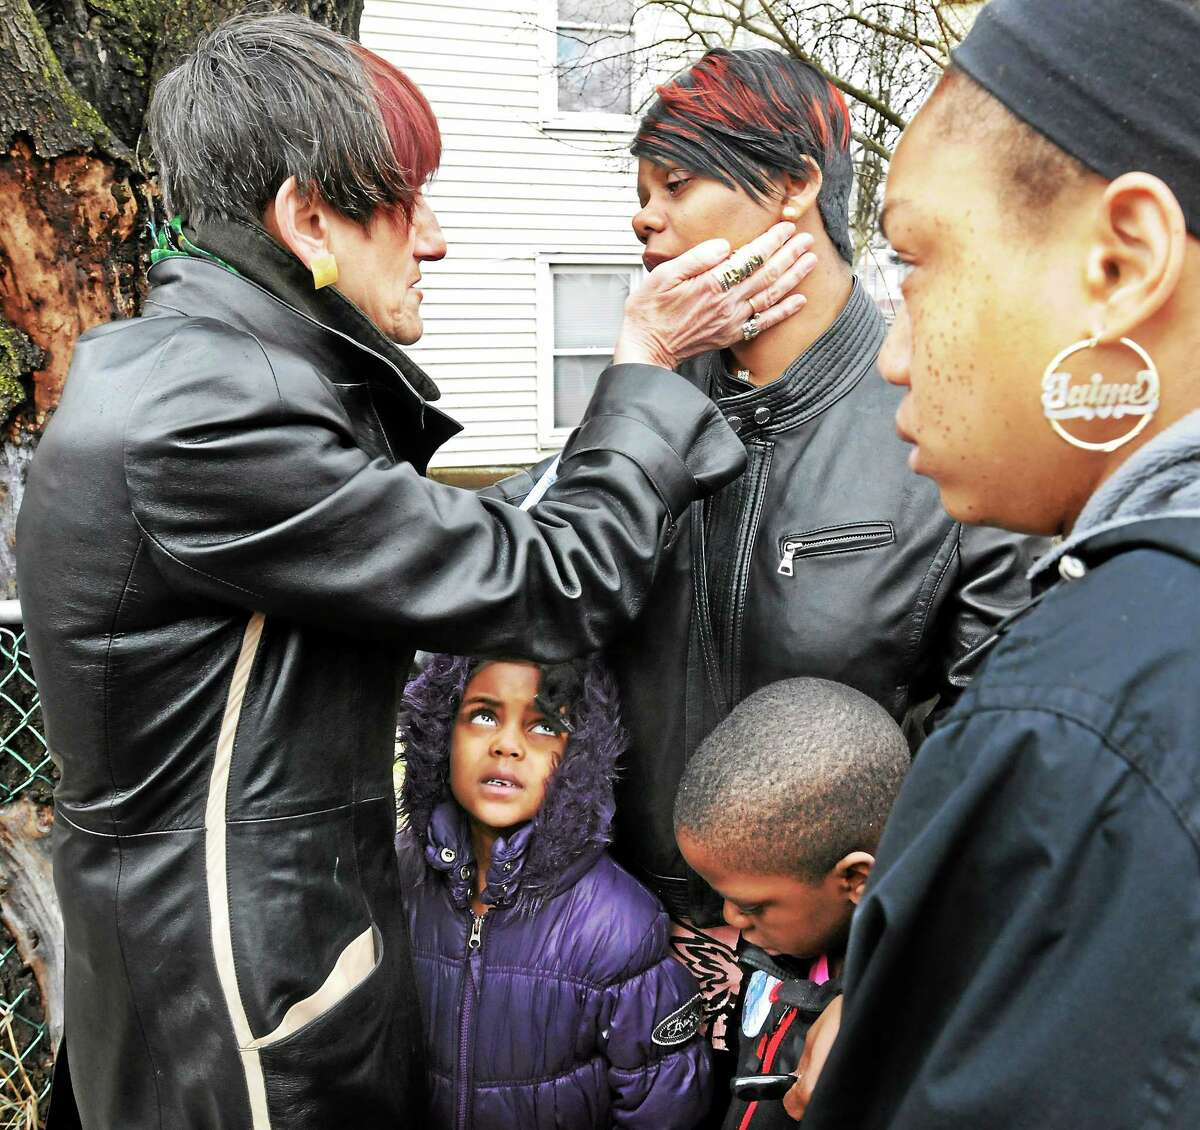 Congresswoman Rosa DeLauro, D-3, meets briefly March 30 with the mothers of sons killed by gunfire. Natasha Pettigrew, mother of Taijhon Washington, with her children Nyree Epps, 5, and Tyree Epps, 7, and Taijhon's cousin, Jaime Edwards.